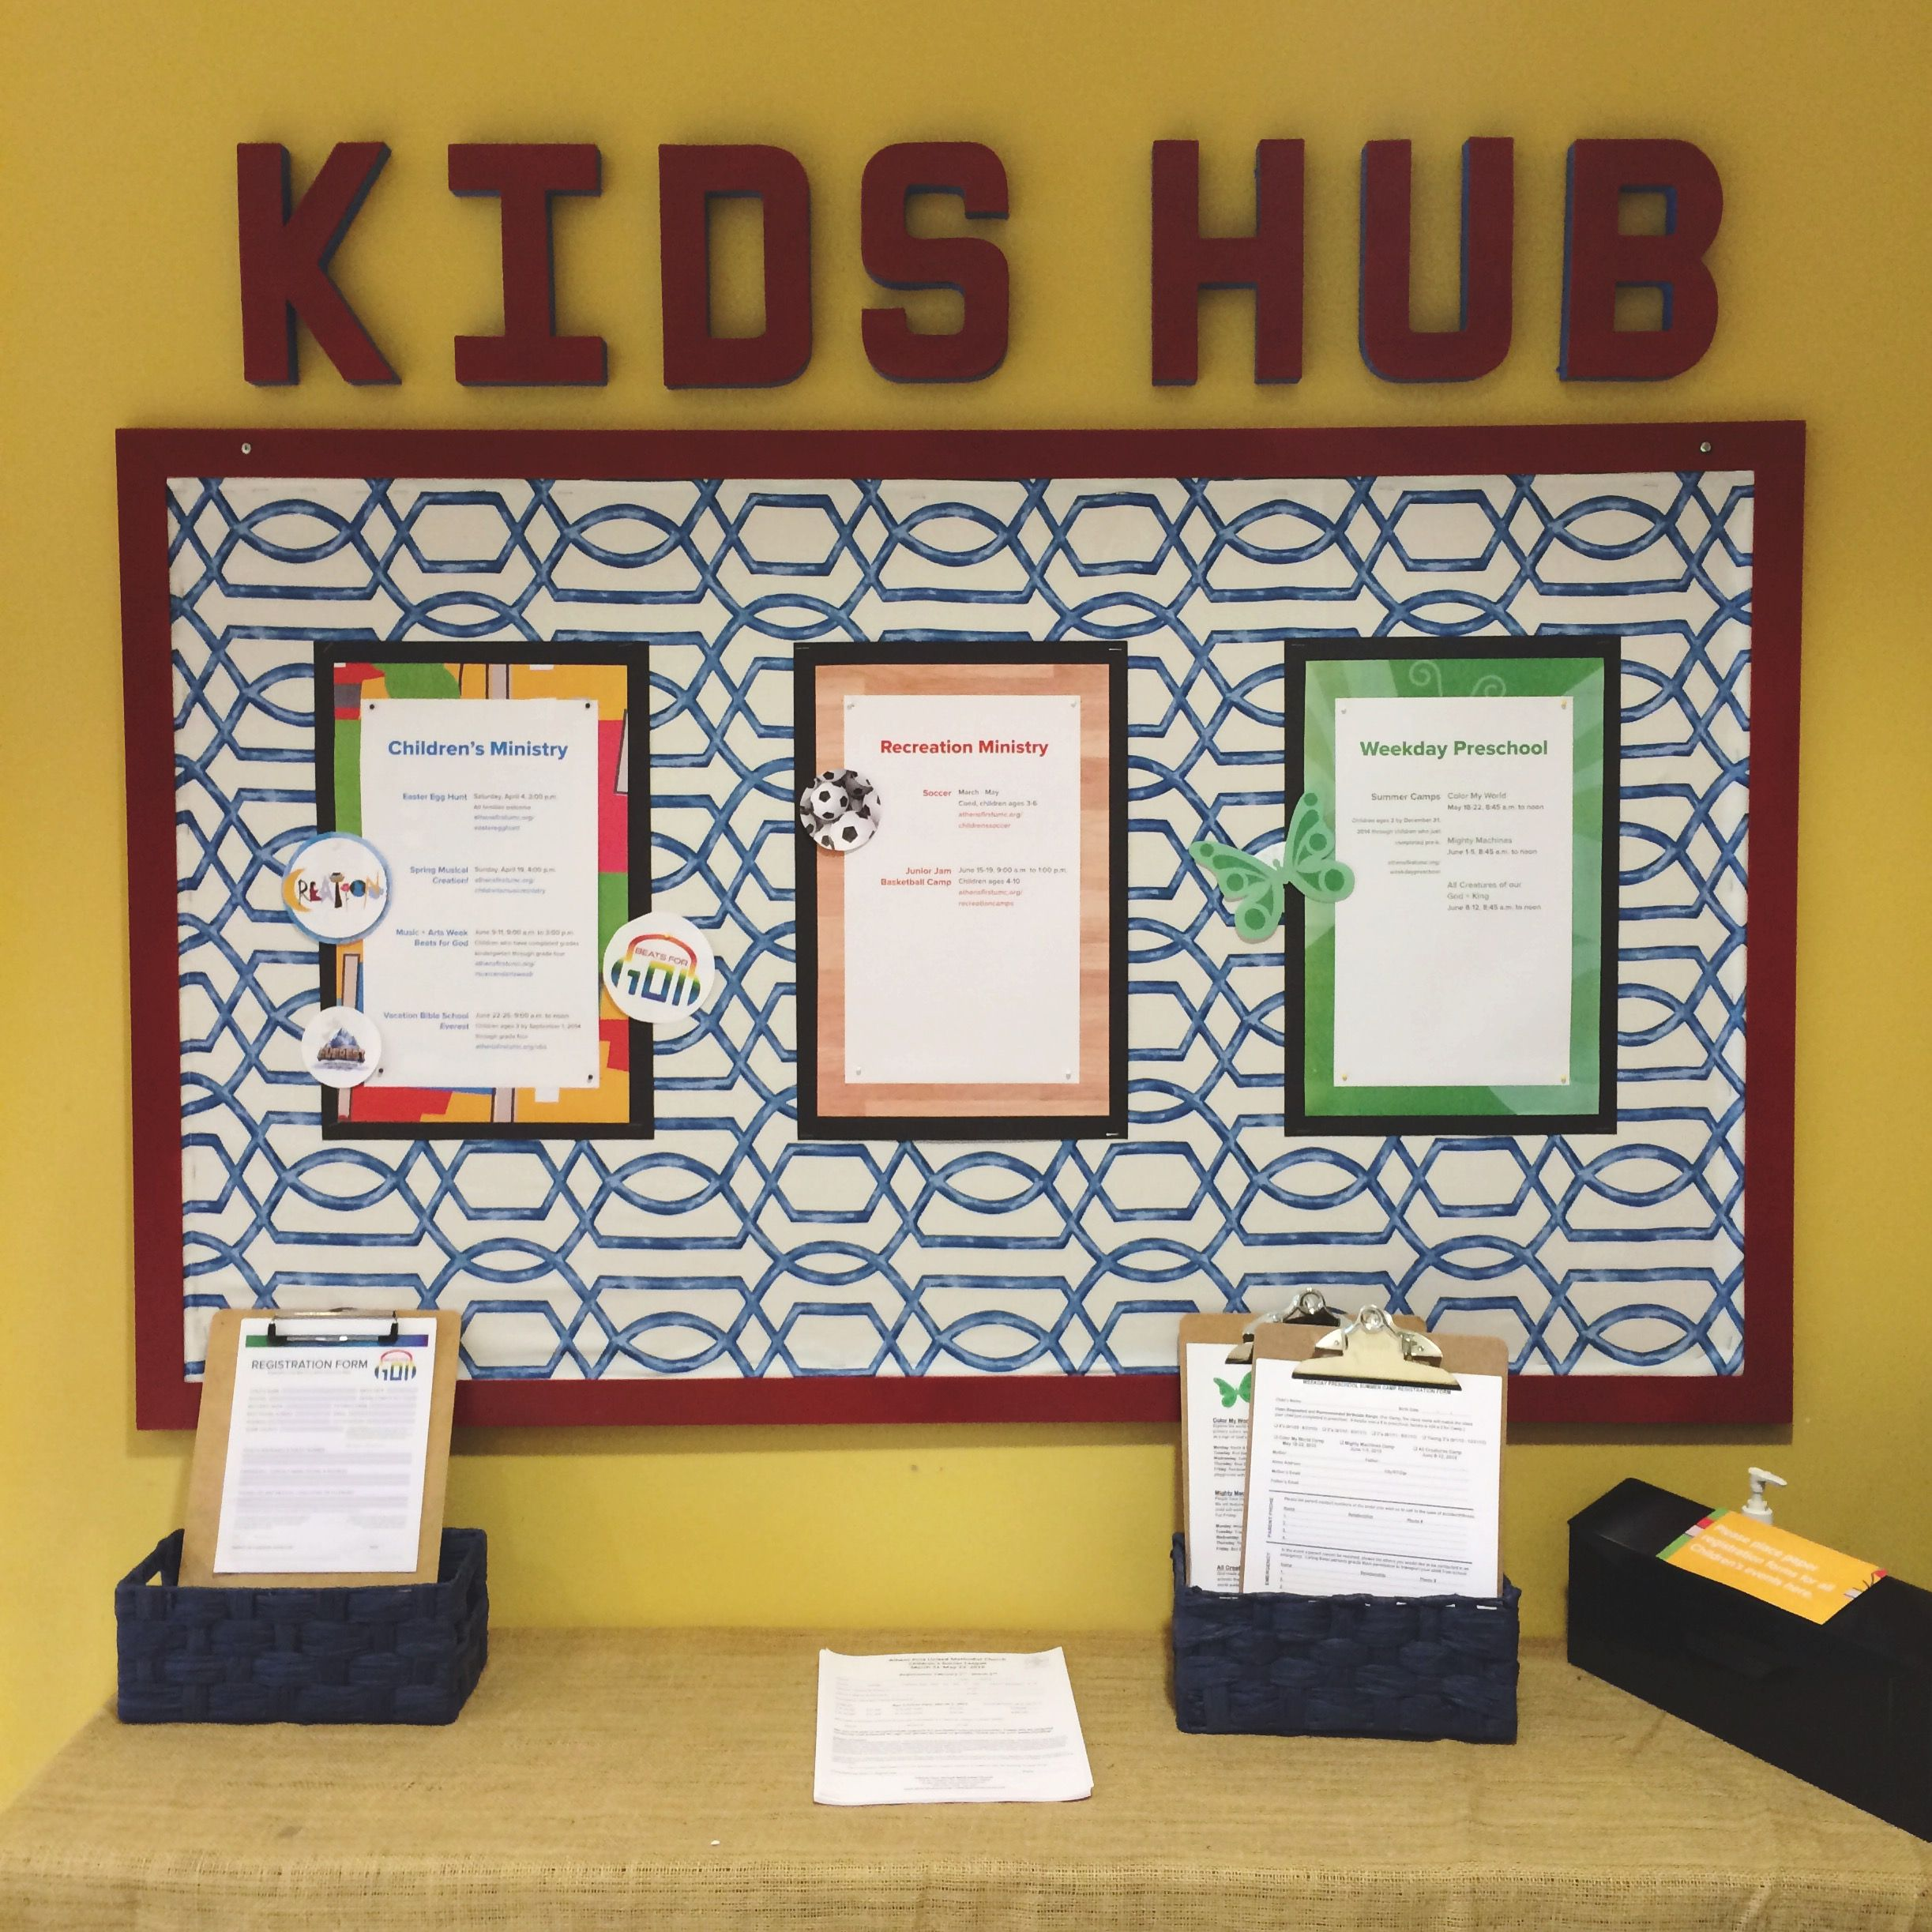 Church Nursery Pictures Google Search: Informational Church Bulletin Board The New Kid's Hub! A